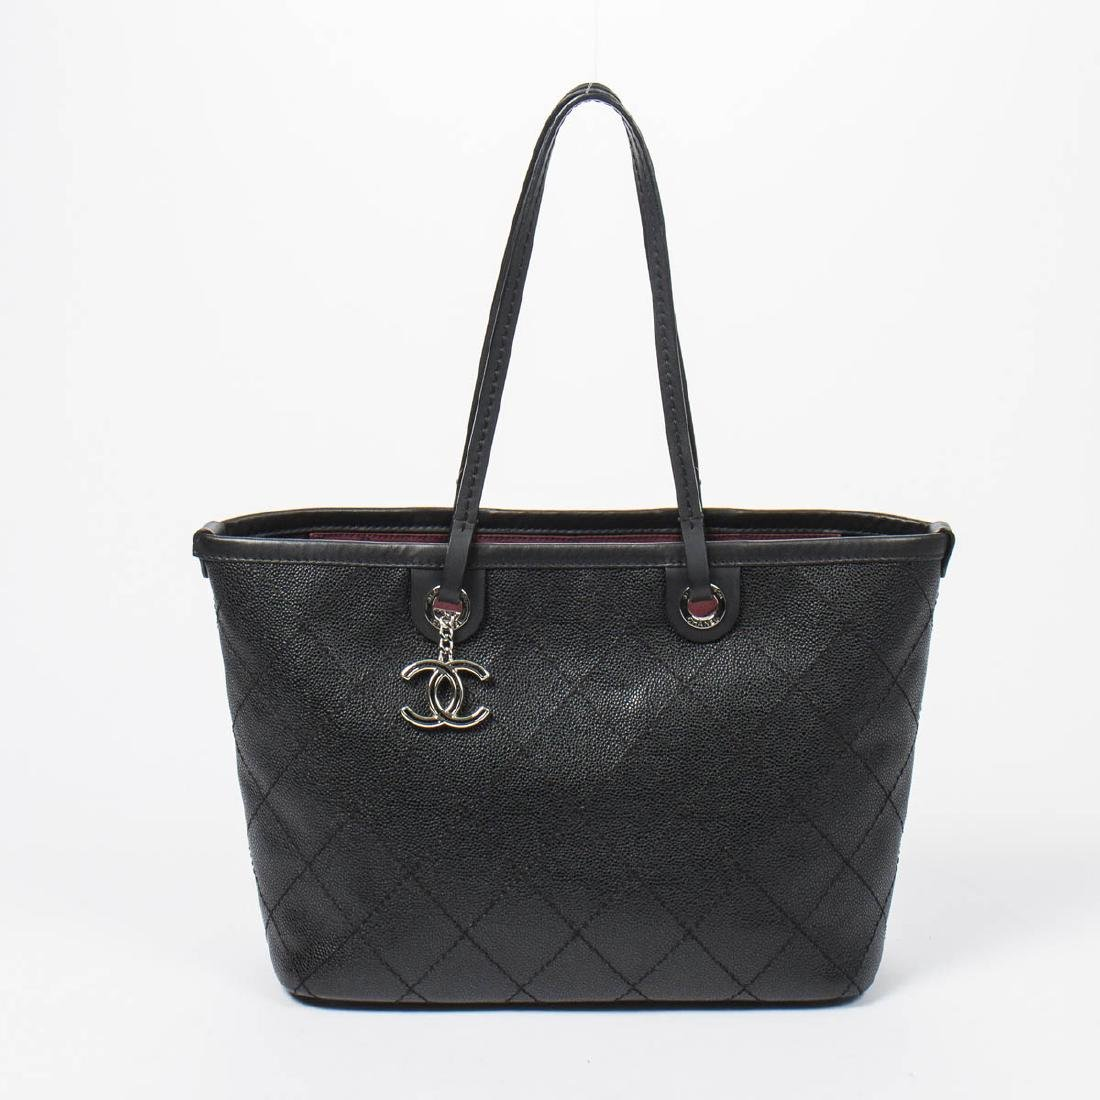 Chanel Shopping Tote MM in Black Quilted Caviar Leather